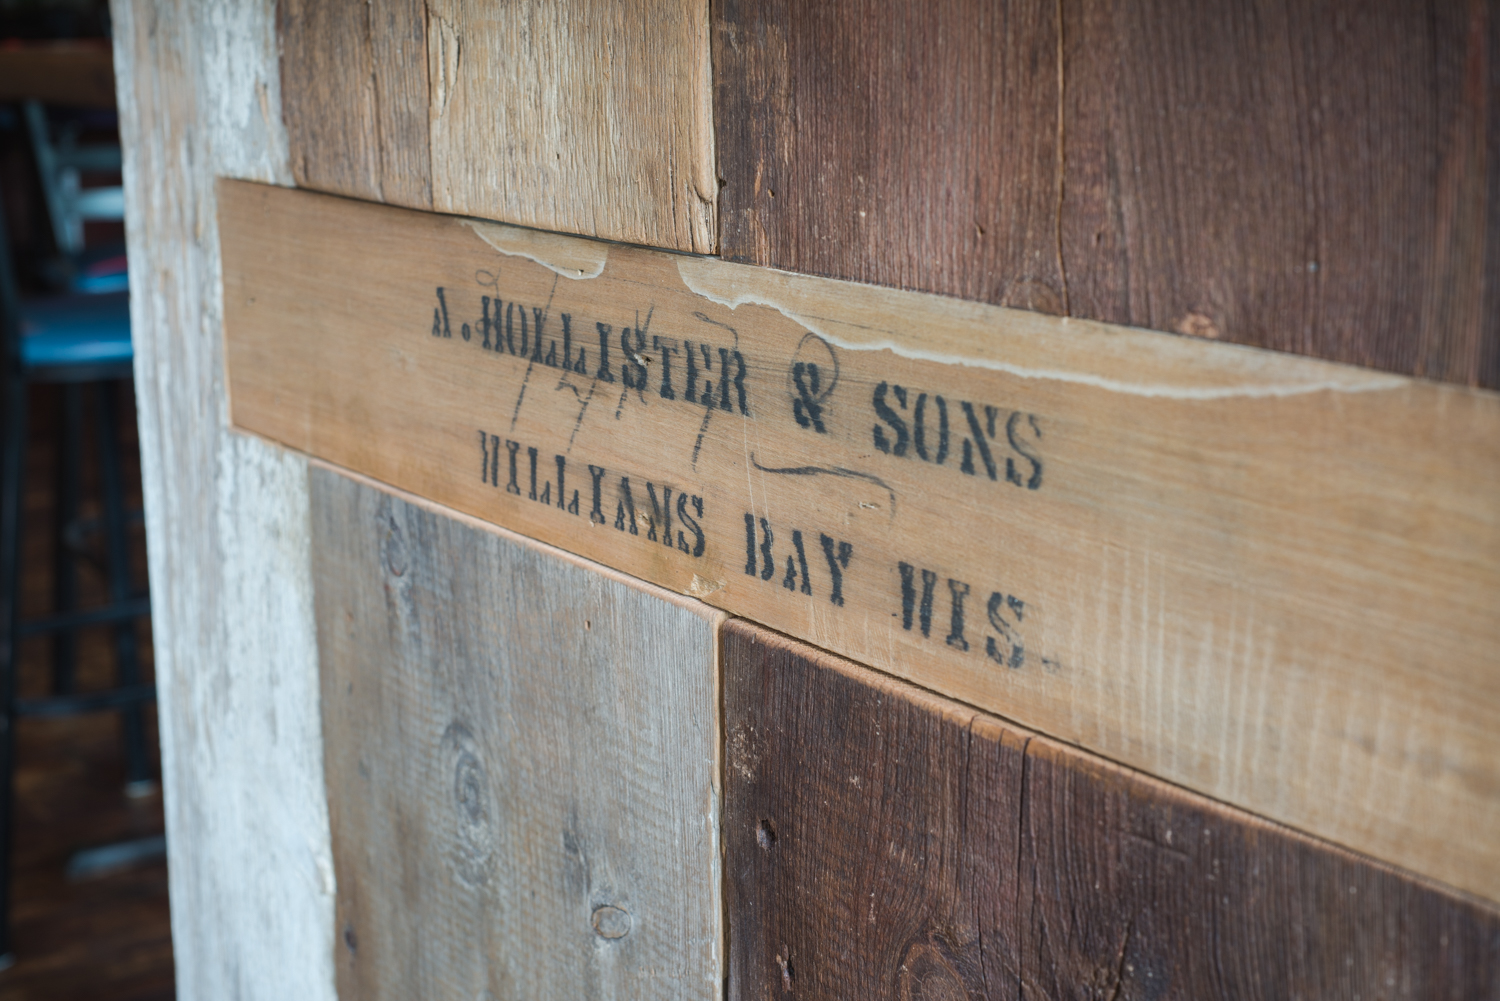 Original lumber company door casing stamp from A. Hollister & Sons.